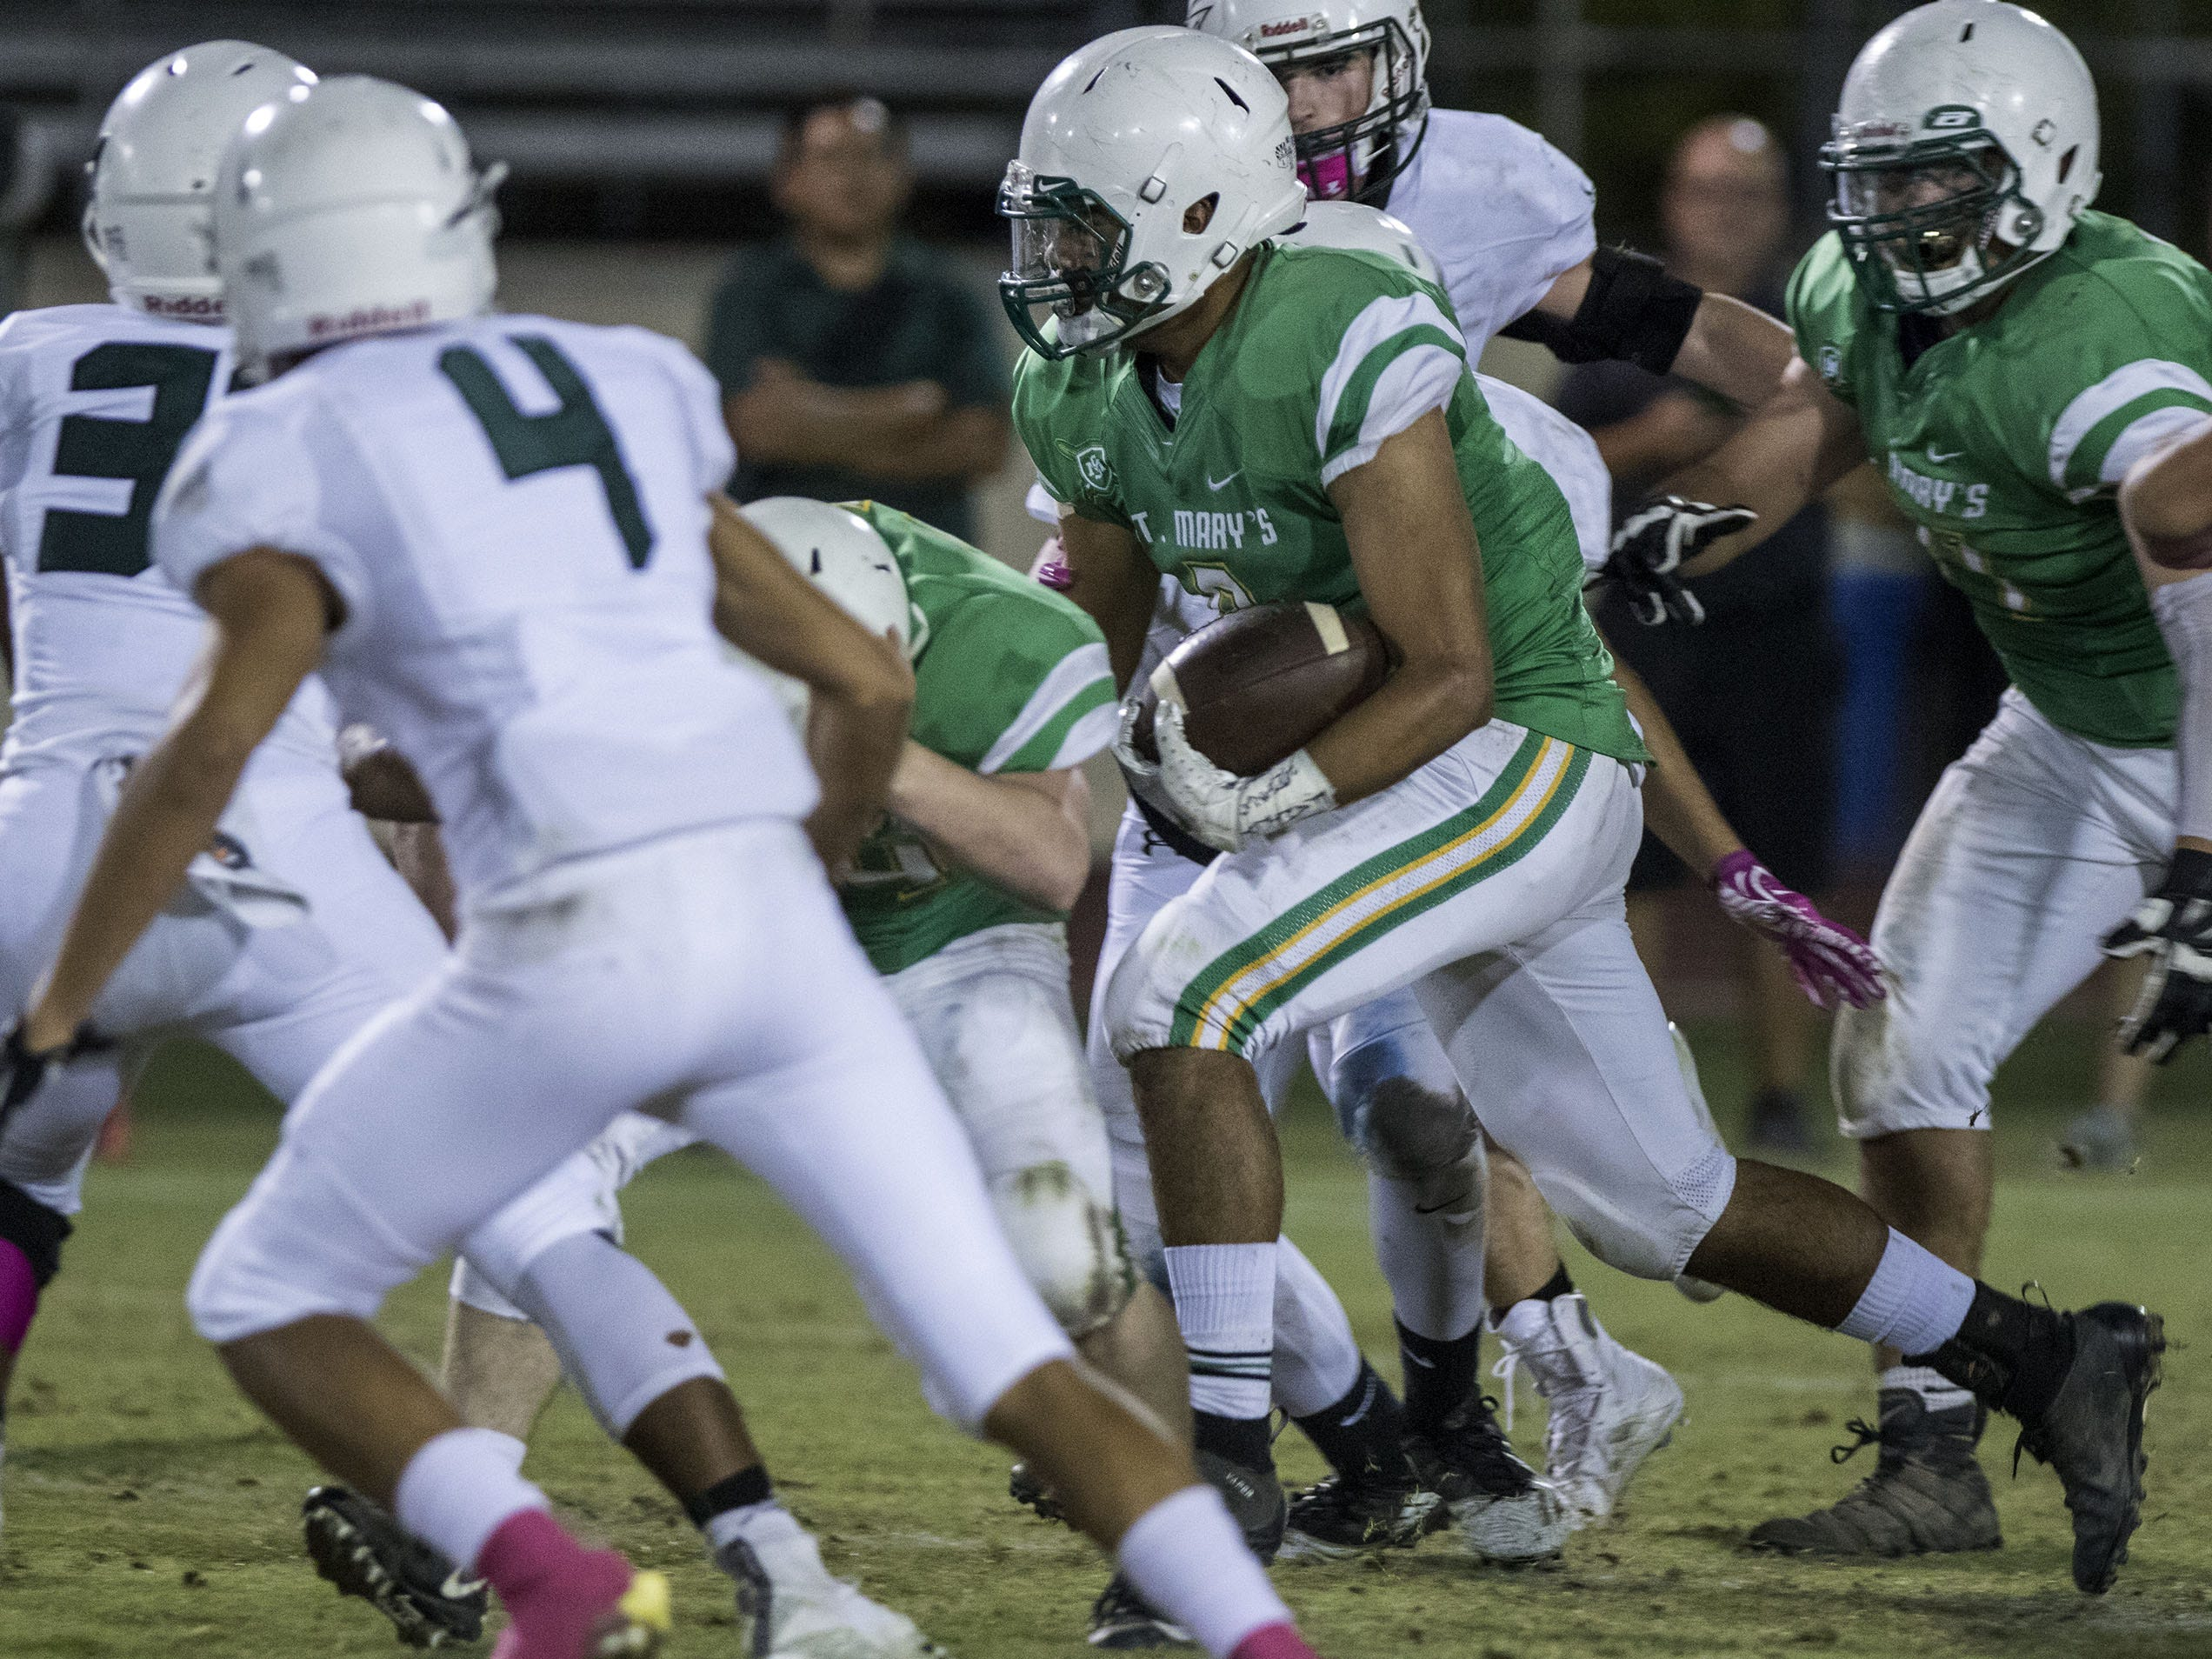 St. Mary's Jessie Parada-Gonzalez runs up the middle against Greenway during their game at Phoenix College in Phoenix Friday, Oct. 12, 2018. #azhsfb